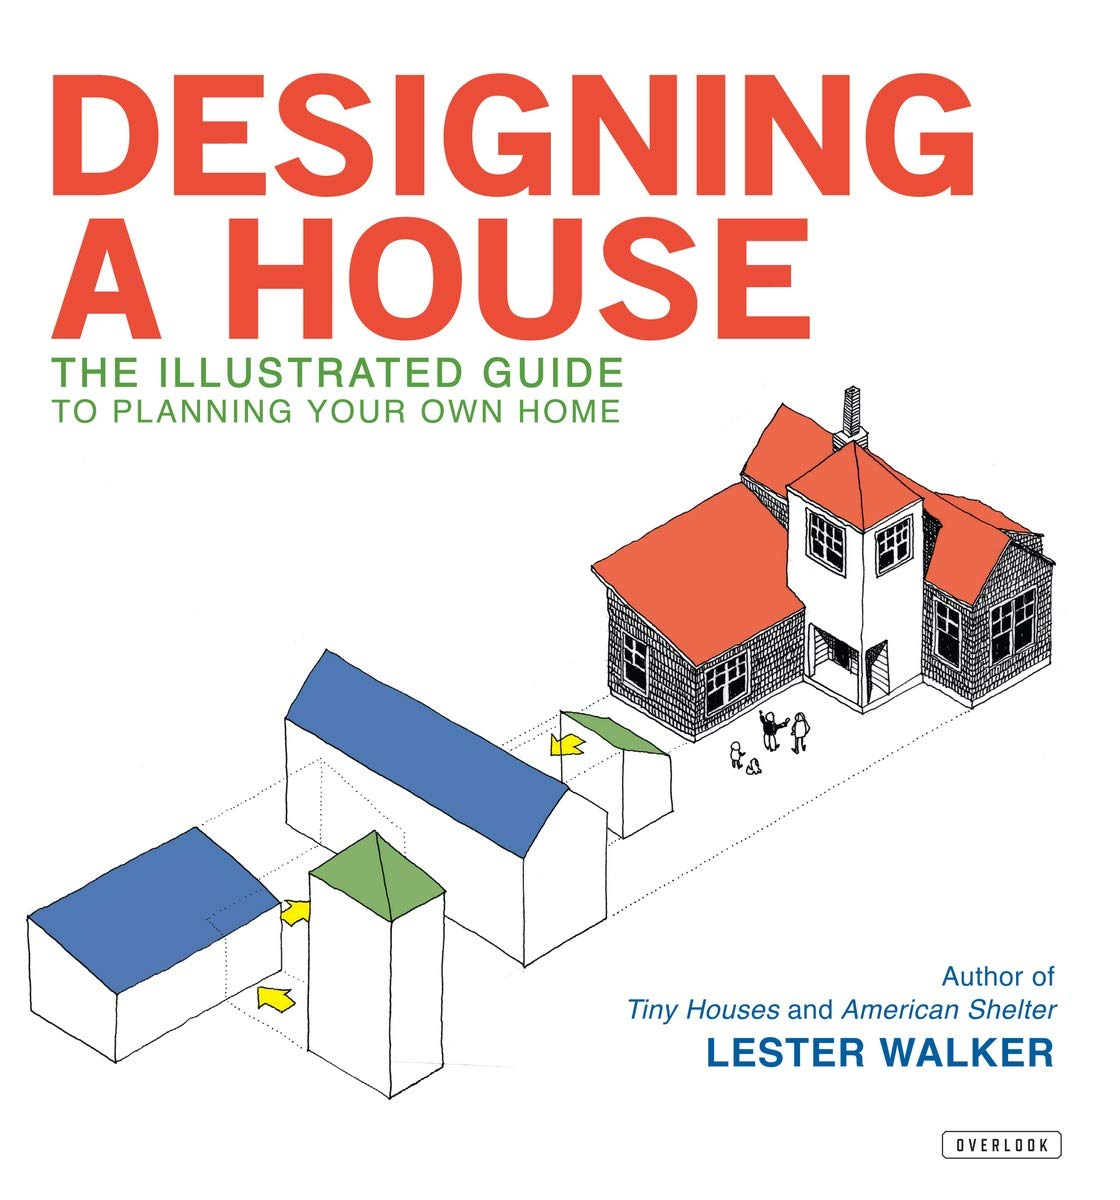 Designing A House: An Illustrated Guide To Planning Your Own Home Hardcover  U2013 July 4, 2012